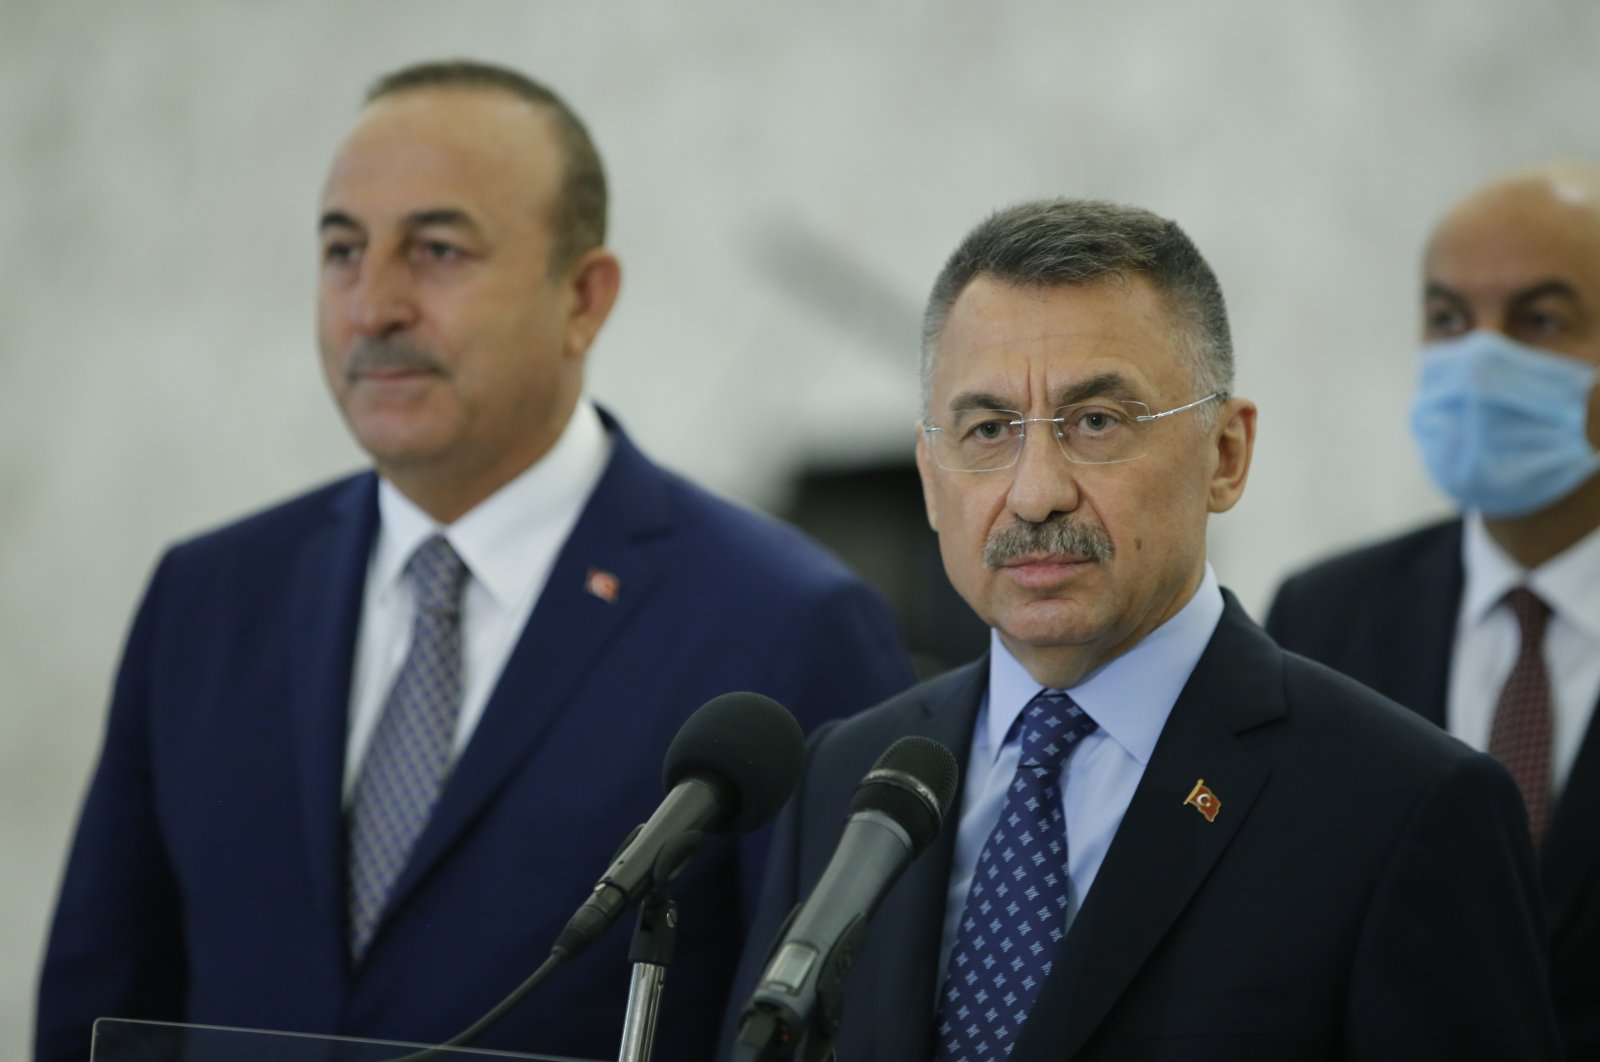 Vice President Fuat Oktay (R) and Foreign Minister Mevlüt Çavuşoğlu (L) take questions at a press conference after their meeting with Lebanese President Michel Aoun in Beirut, Lebanon on Aug. 8, 2020. (AA Photo)